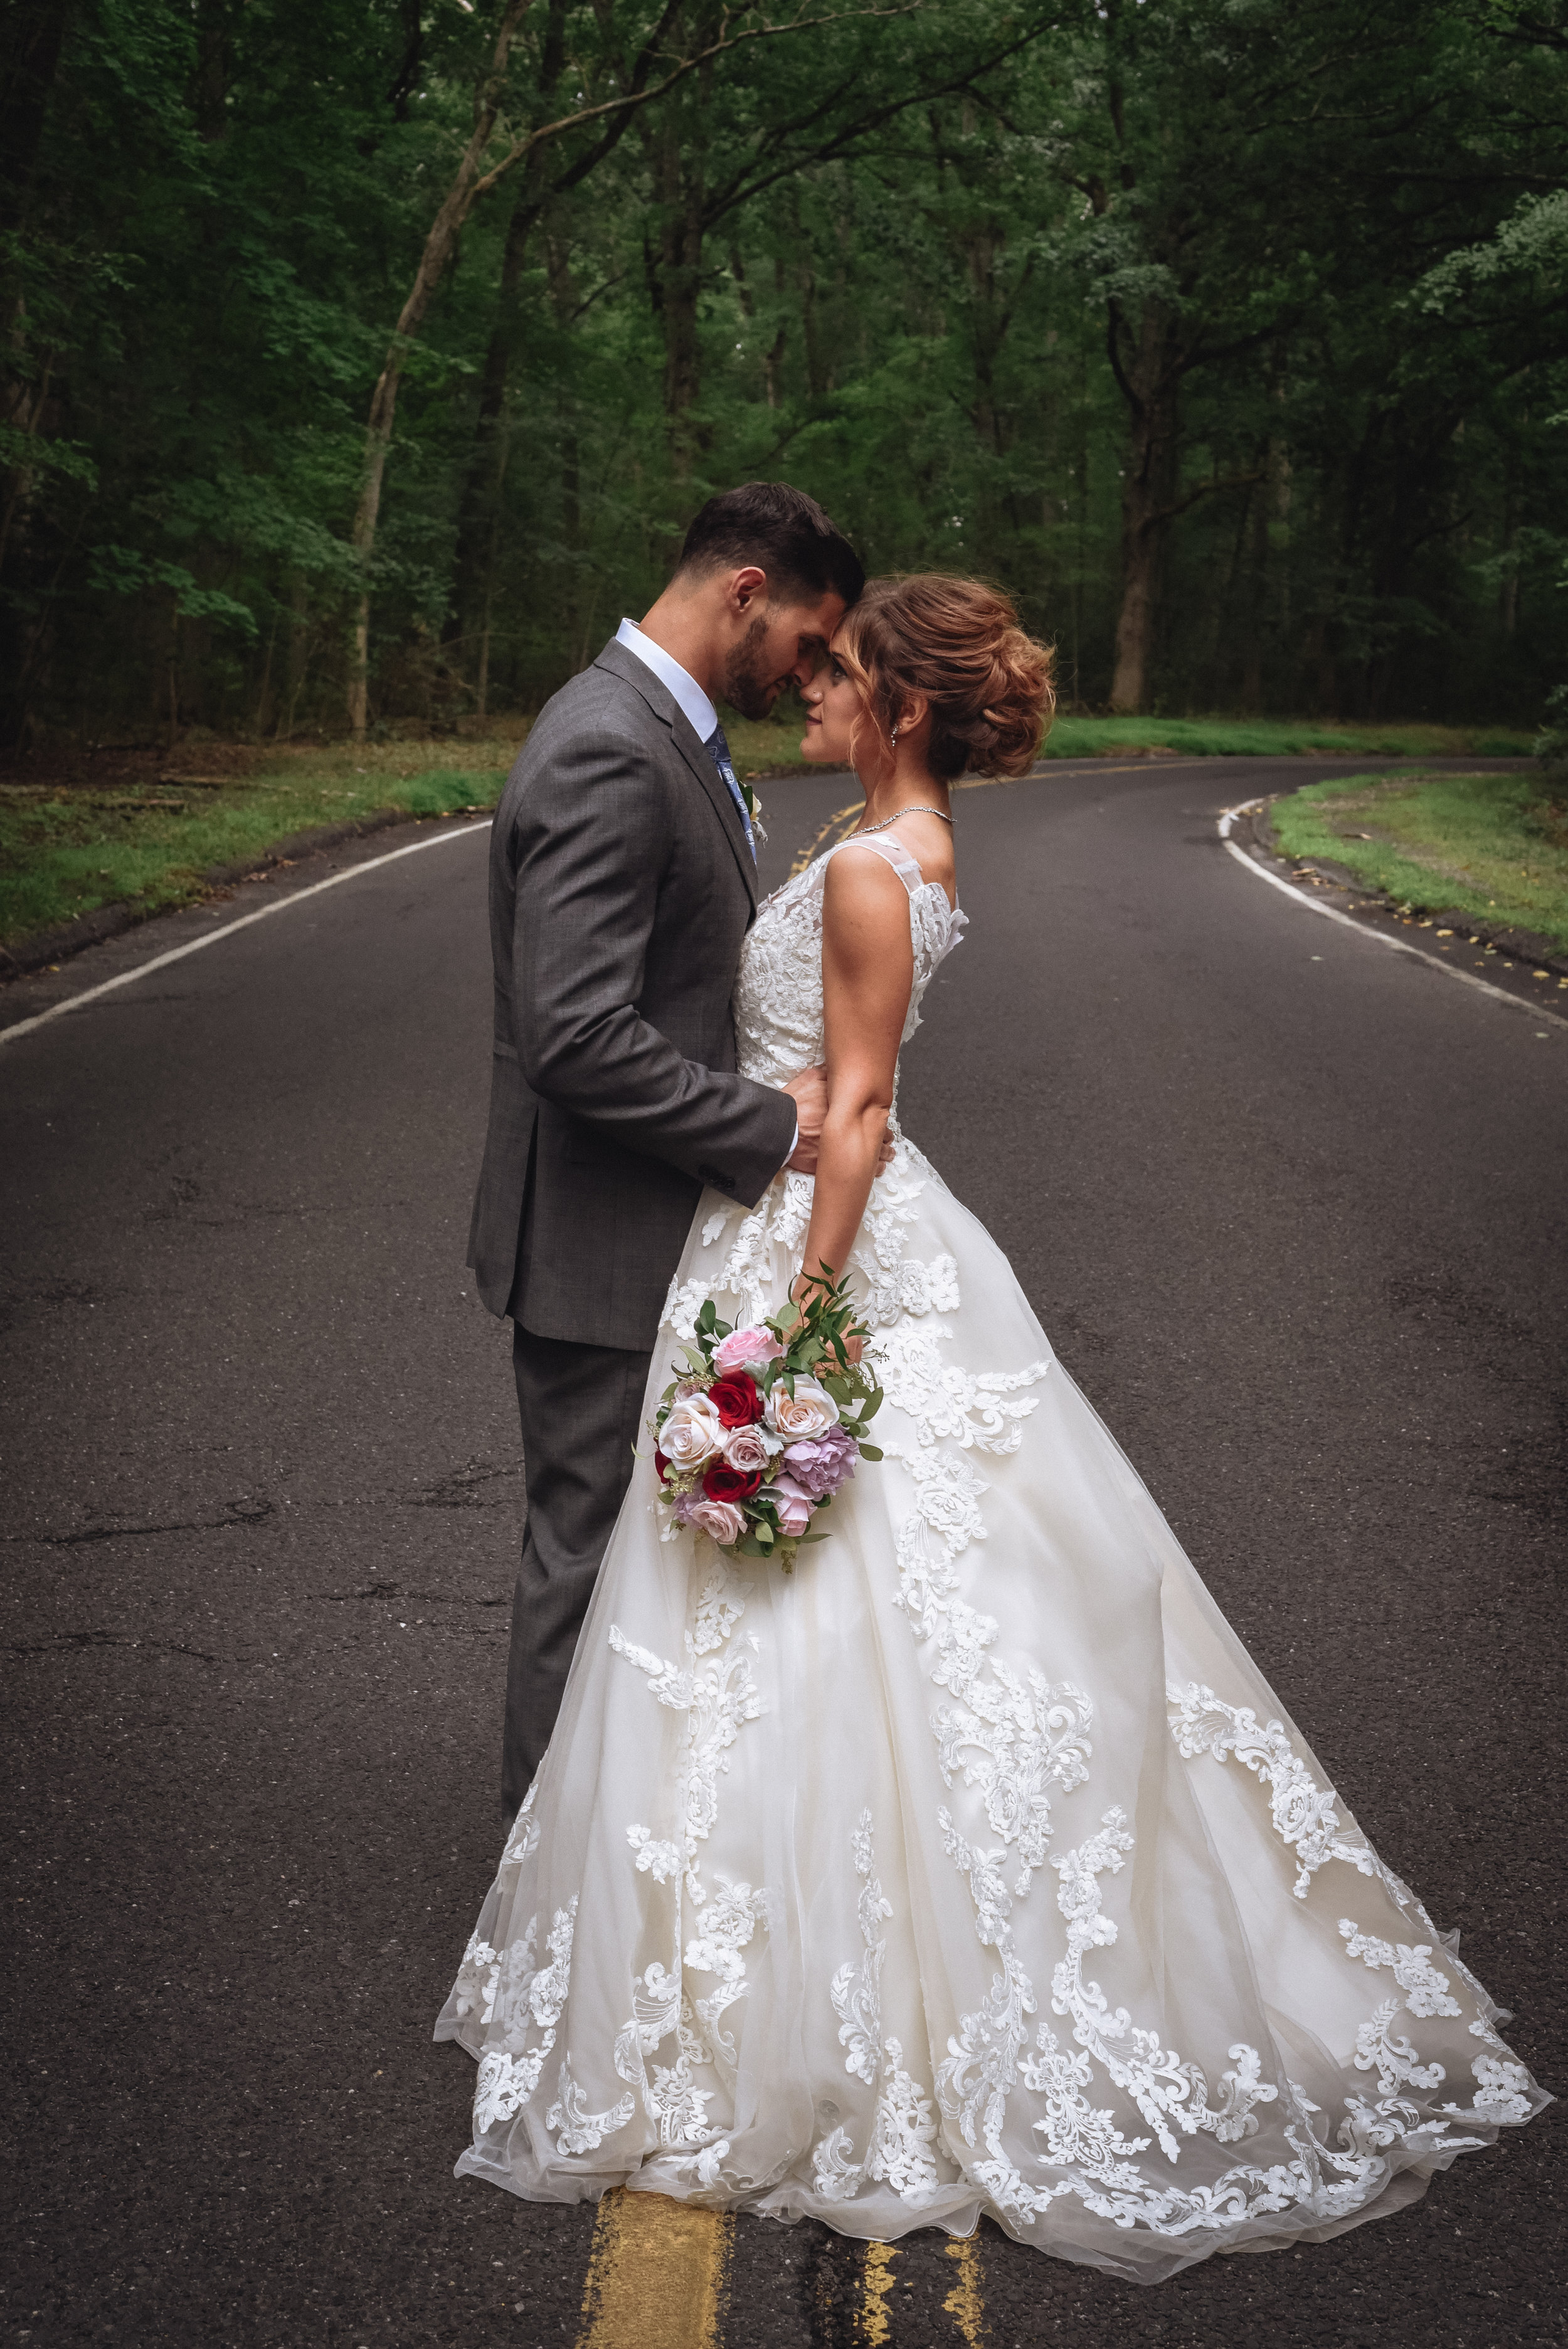 Weddings - All wedding packages include an allotted time, professionally edited photos given on an USB drive. Prints not included but can be added for additional cost.6 hours of coverage, 300+ images - $15008 hours of coverage, 500+ images - $2000Additional packages upon request